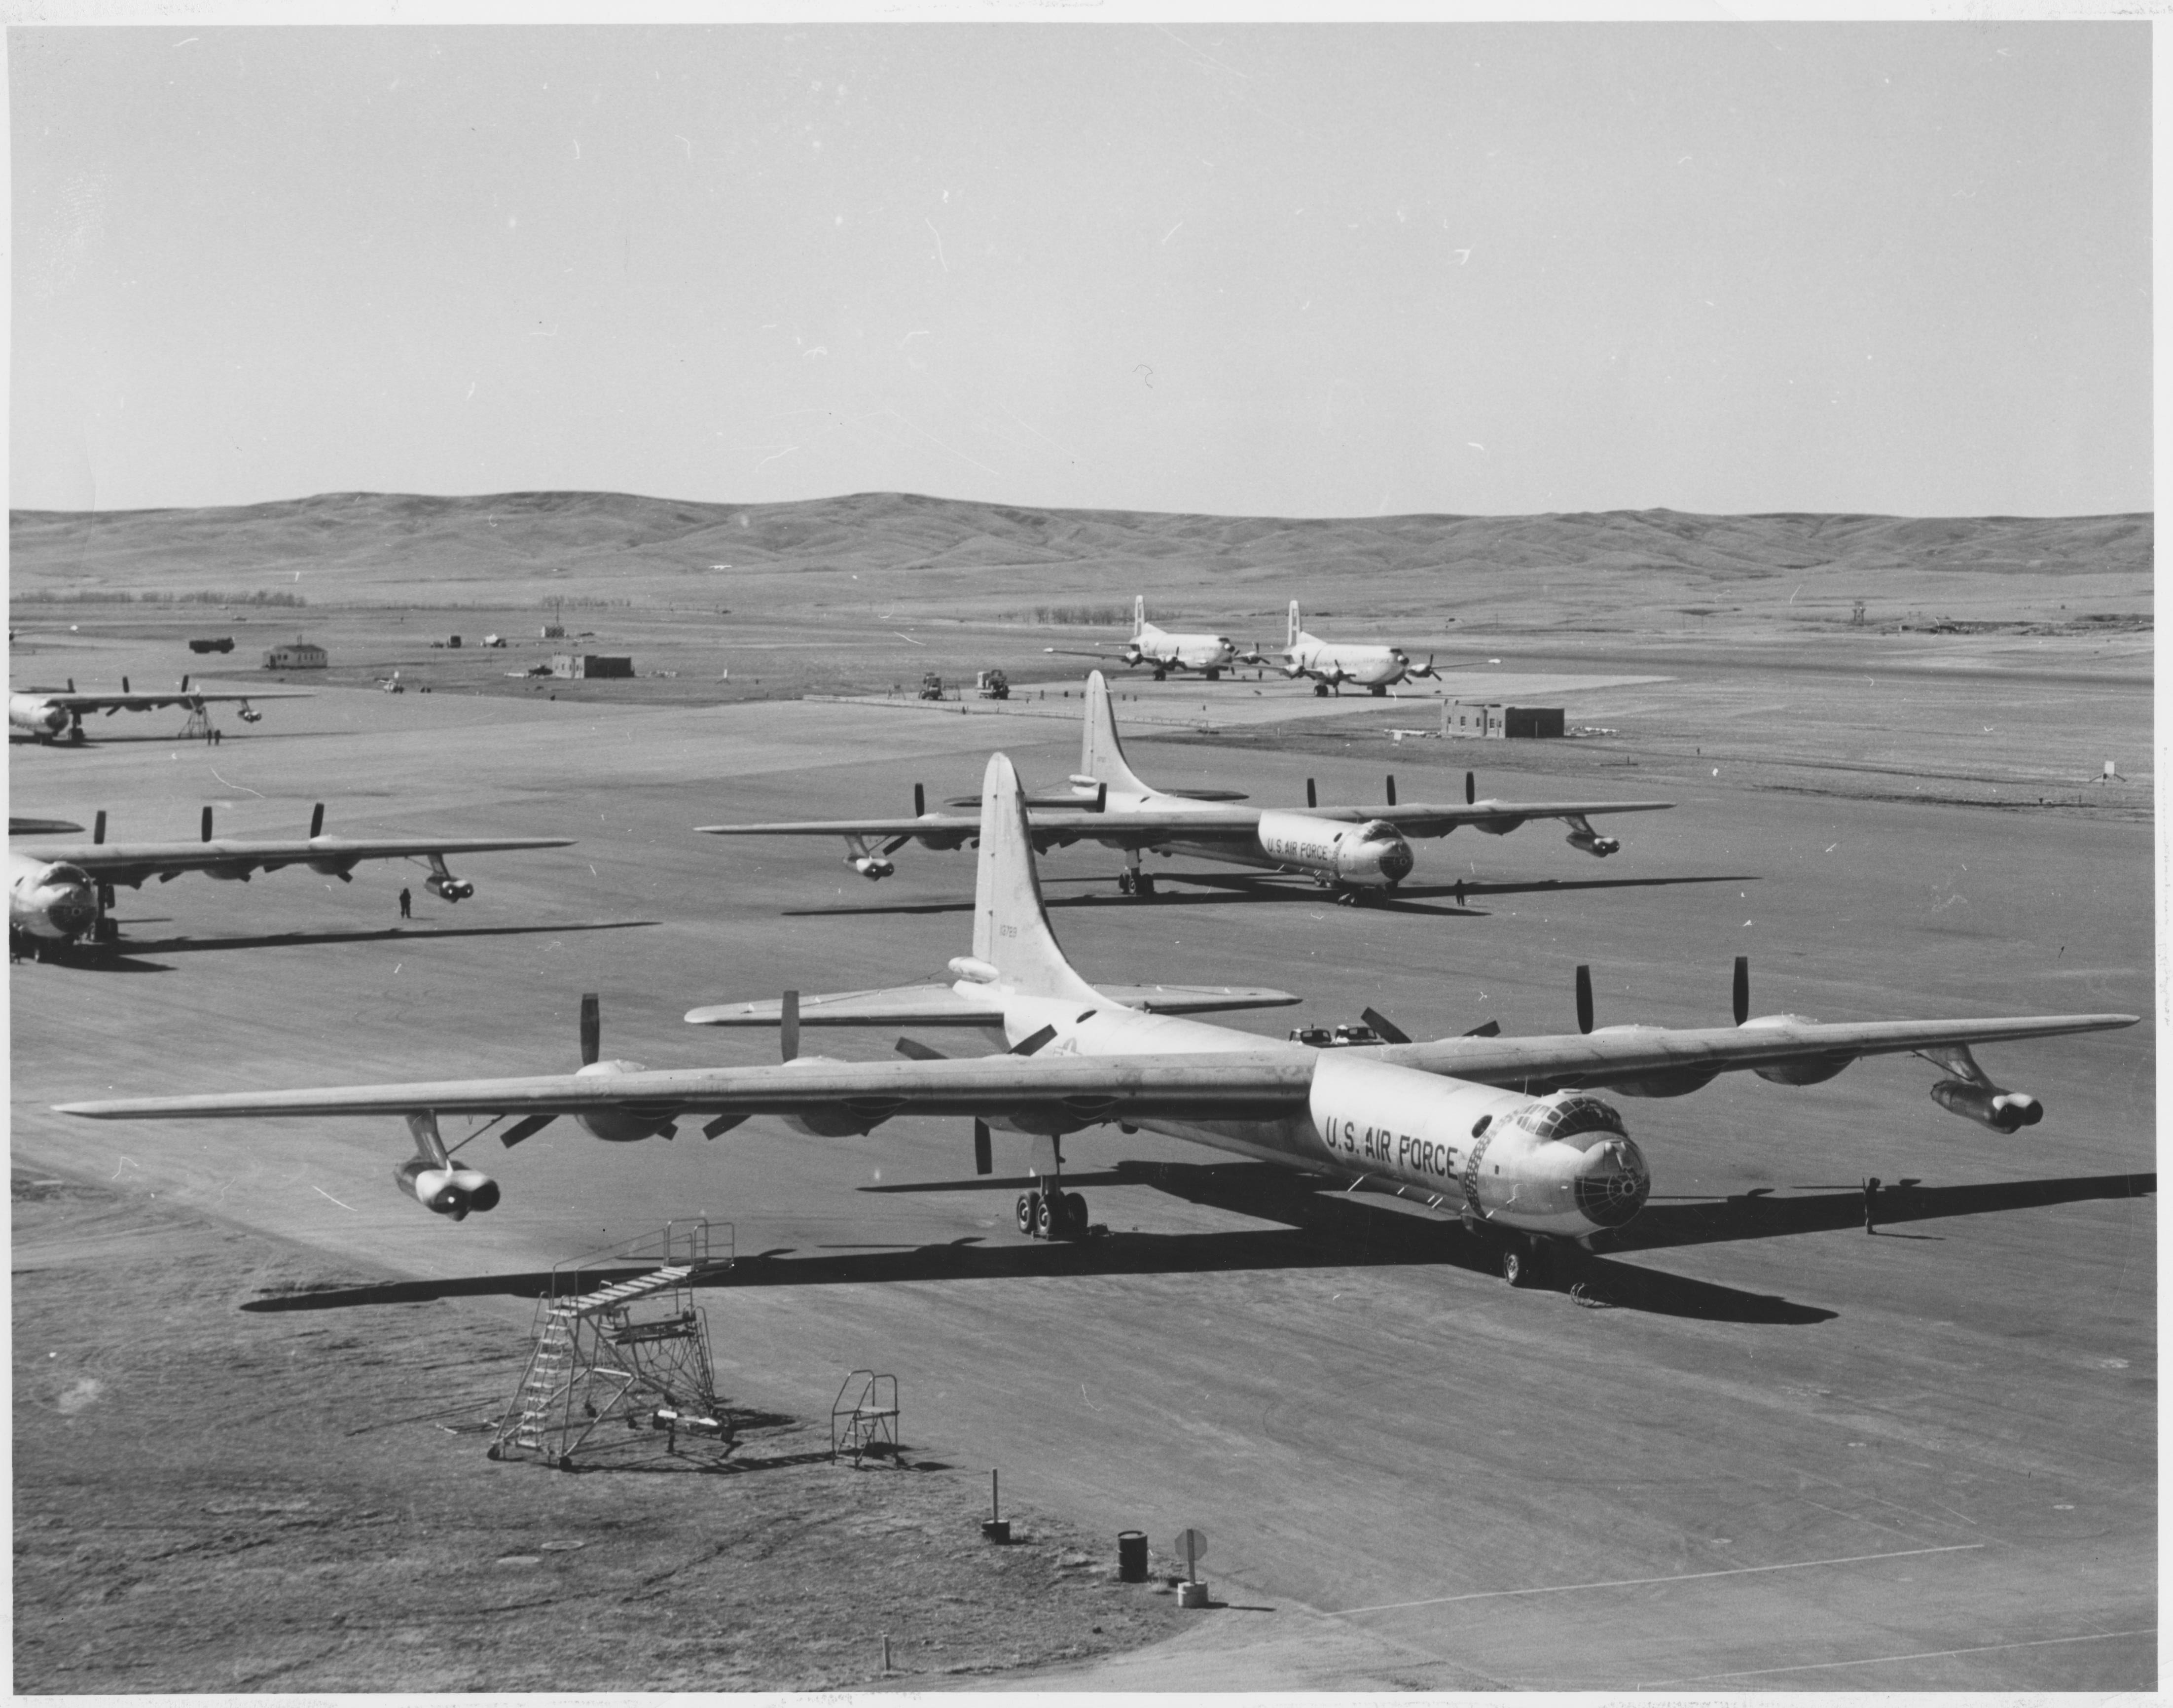 Image - 7) RB-36H 51-13729 & 51-13727 bombers and C-124s at EAFB  (1).jpg